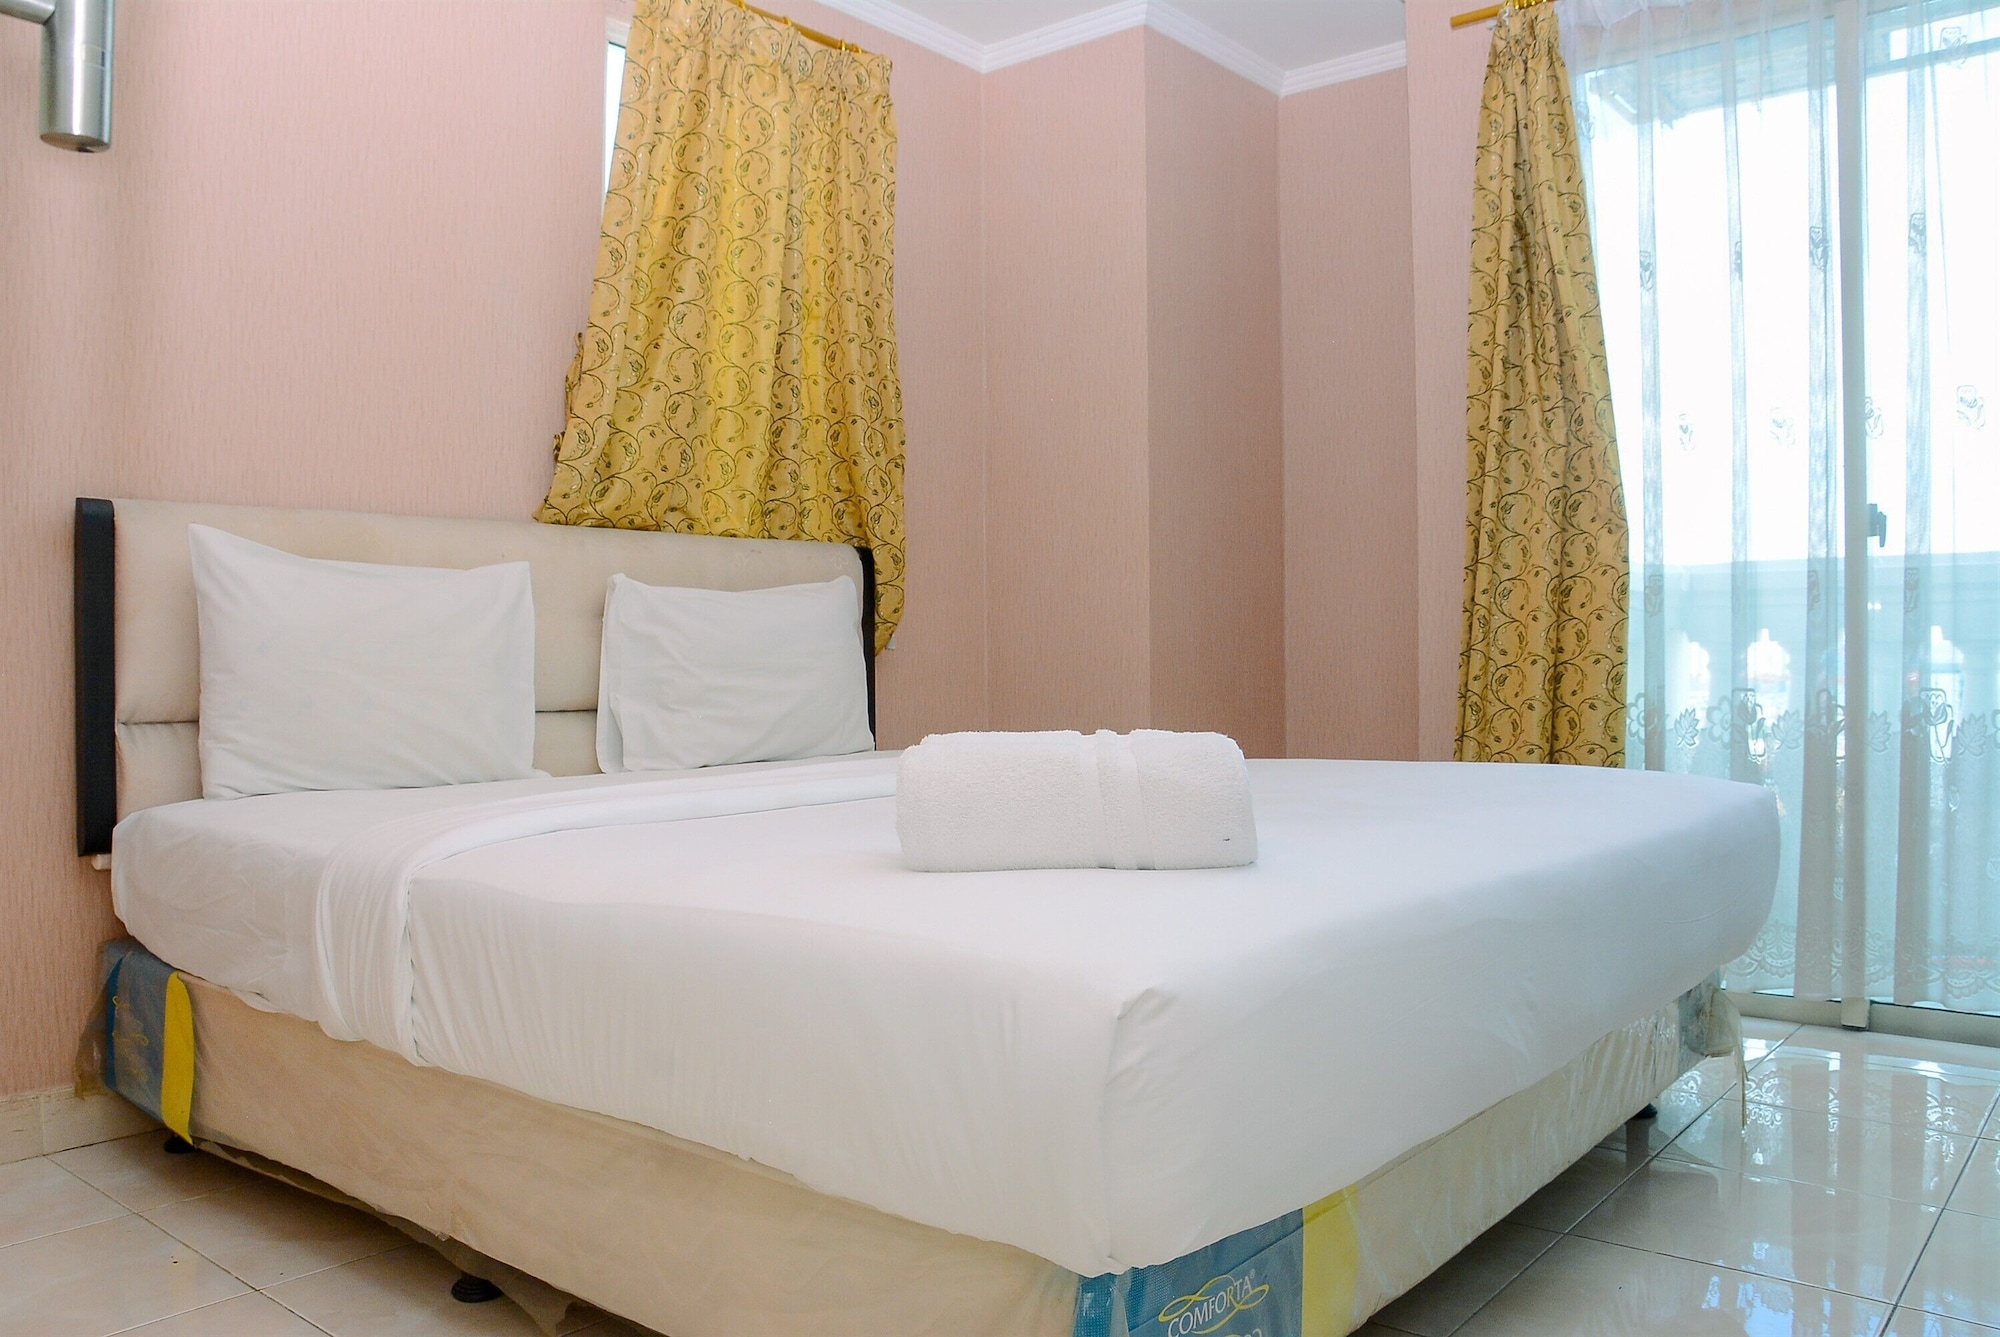 Minimalist and Cozy 2BR Apartment at The Boulevard, Jakarta Pusat